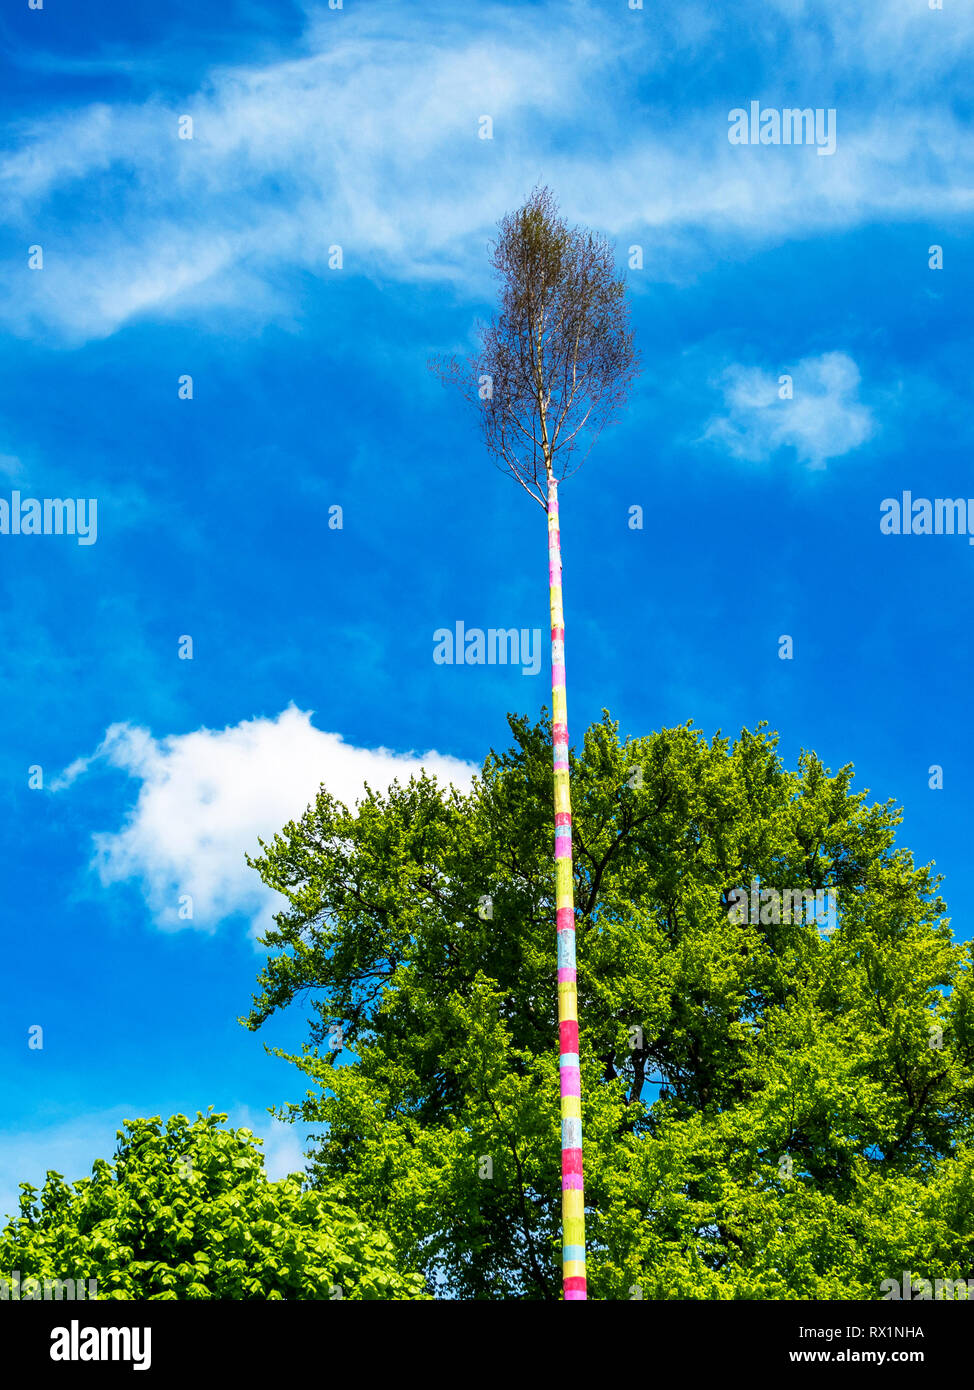 Erected maypole, Maibaum in June, Herresbach Germany - Stock Image